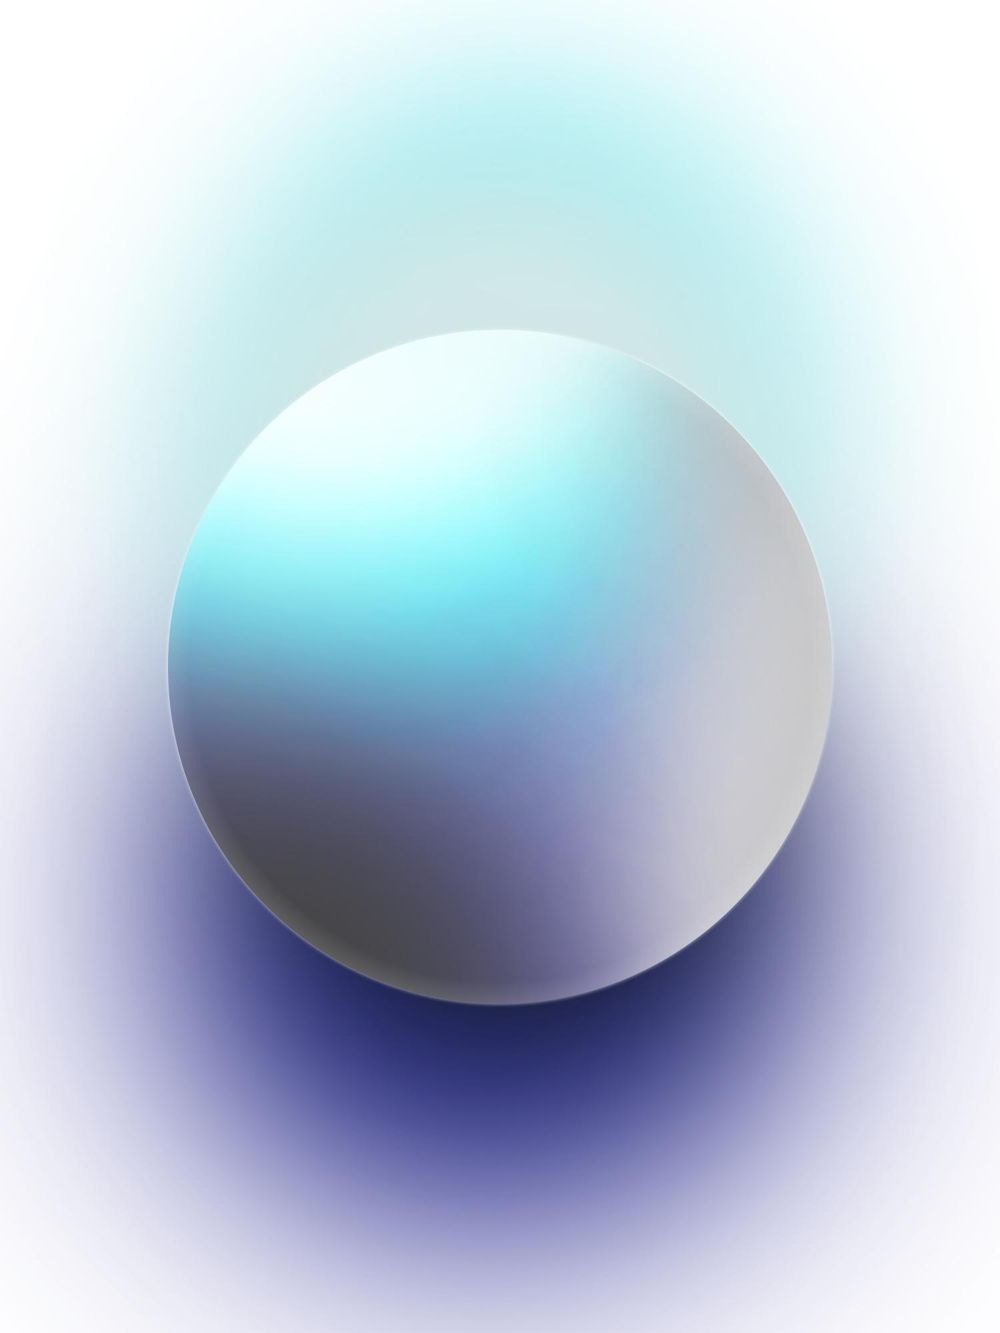 A 3D Ball - image 1 - student project